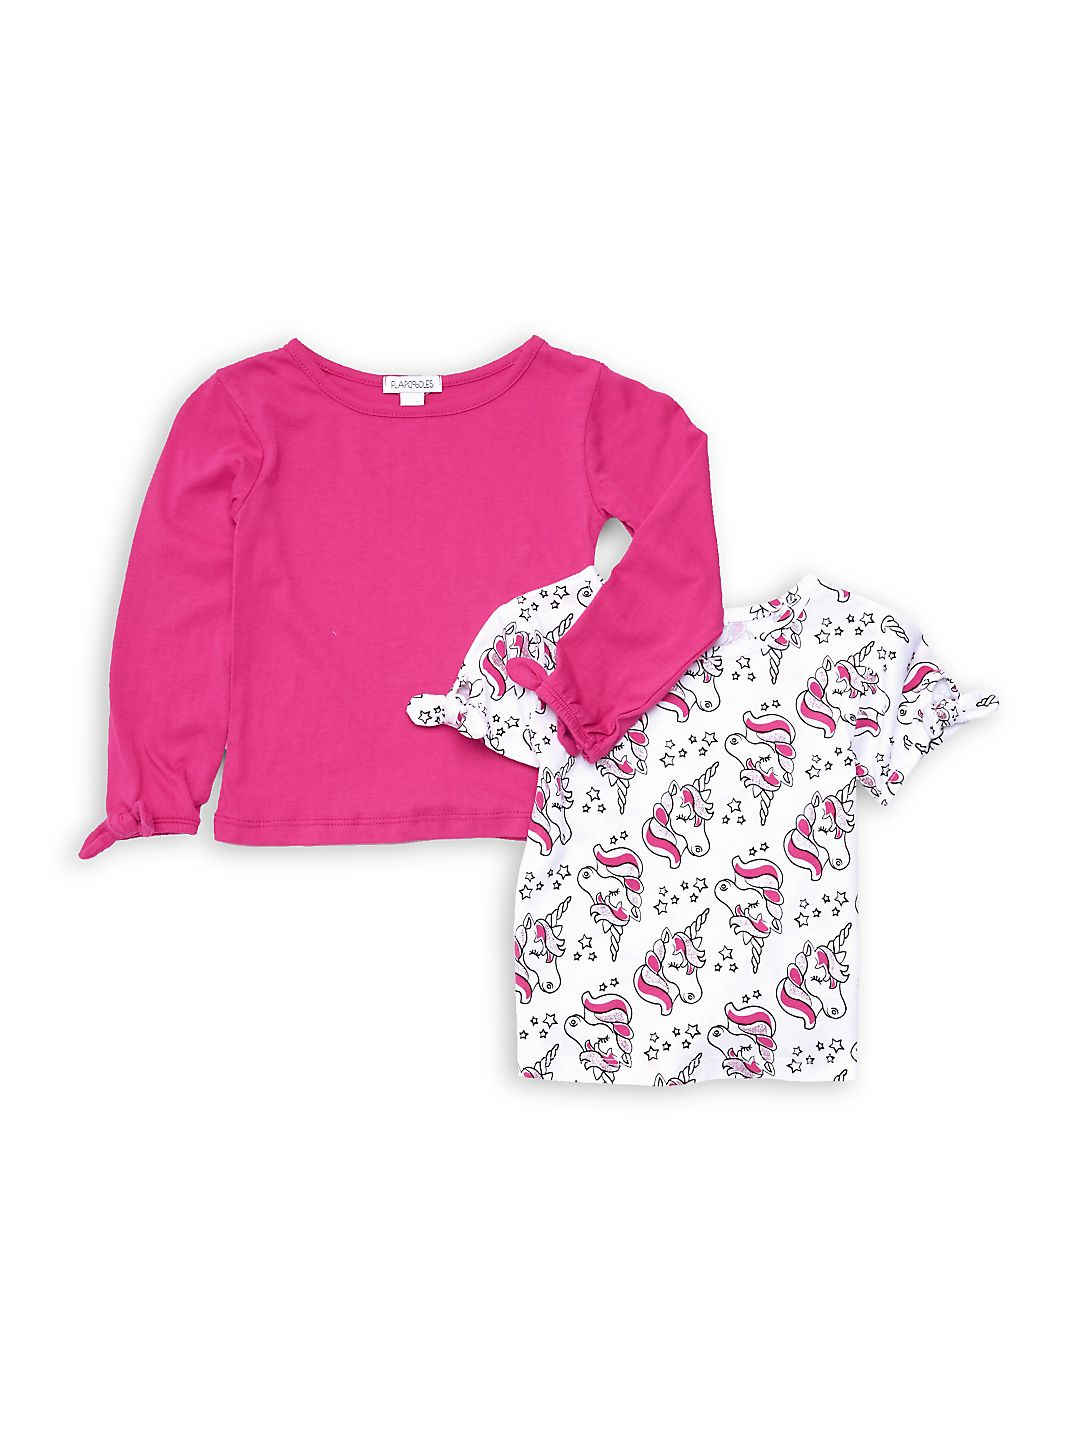 Little Girl's 2-Piece Long-Sleeve Top & Short-Sleeve Top Set